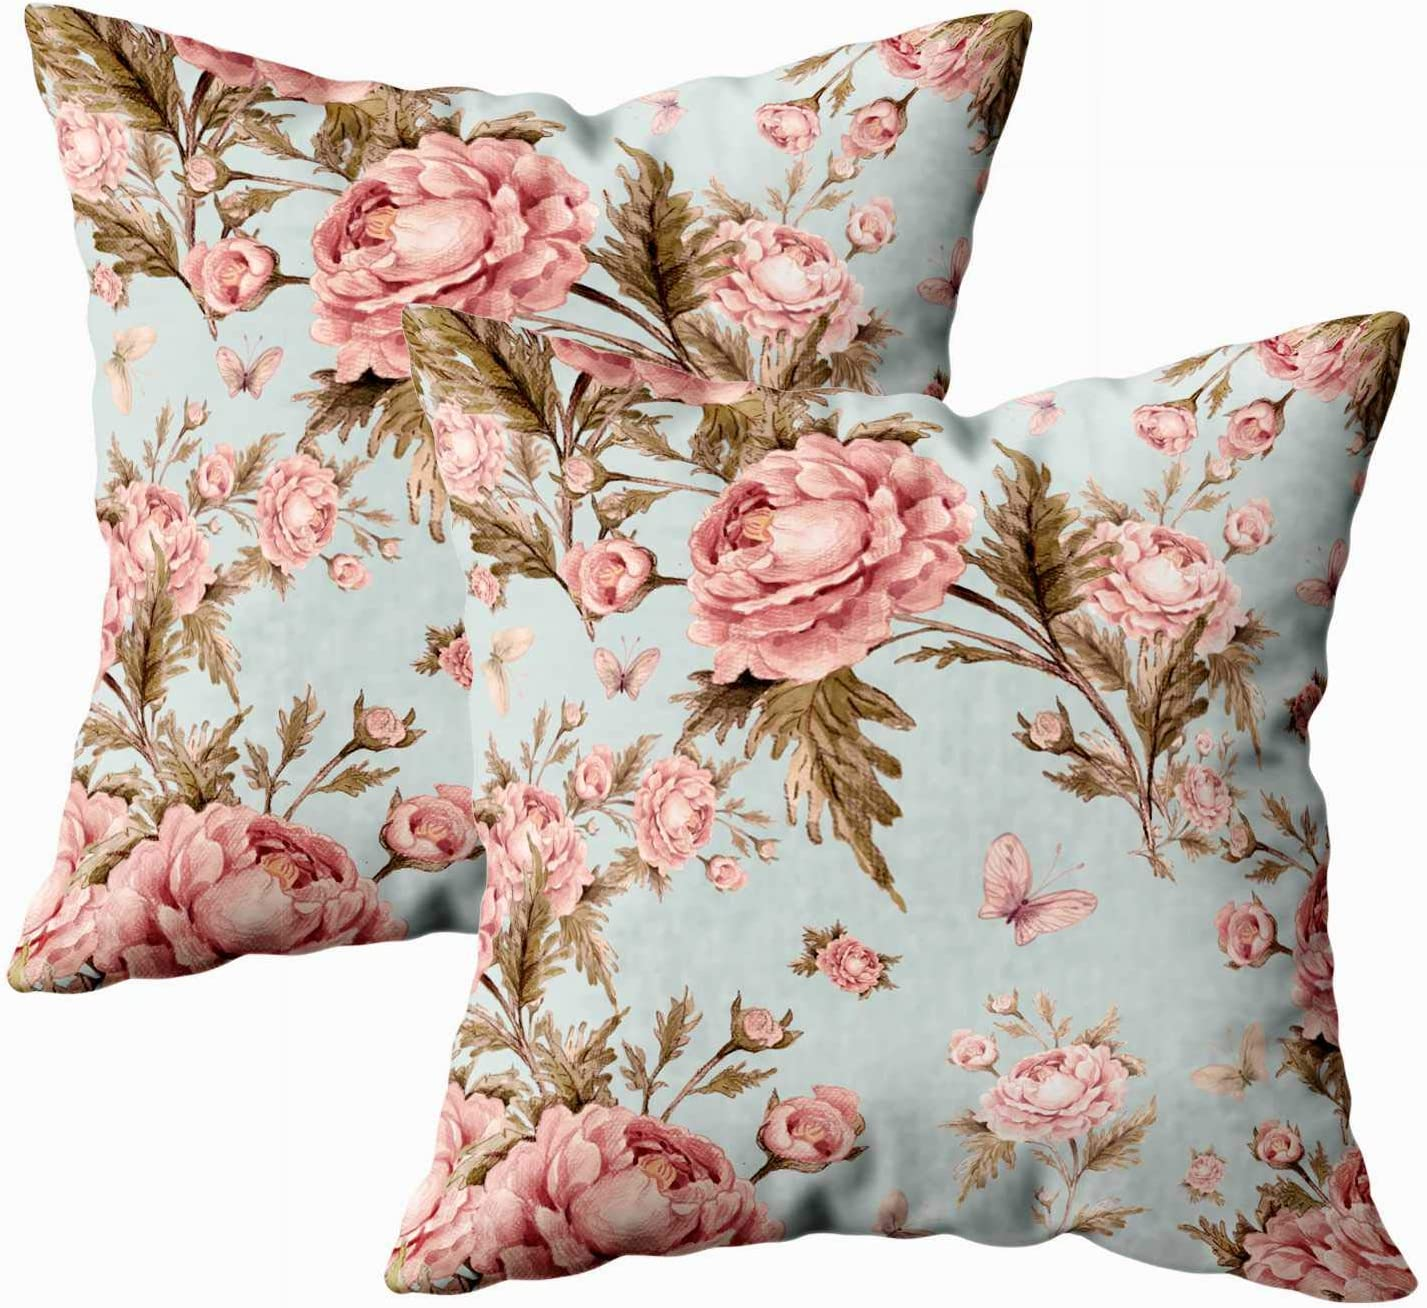 Amazon Com Musesh Floral Velvet Pillow Home Pillow Cases Pack Of 2 Watercolor Pattern With Roses And Butterflies Beautiful Decoration Design Trendy Exquisite Of Sketches Sofa Pillowcase 18x18inch Pillow Covers Home Kitchen